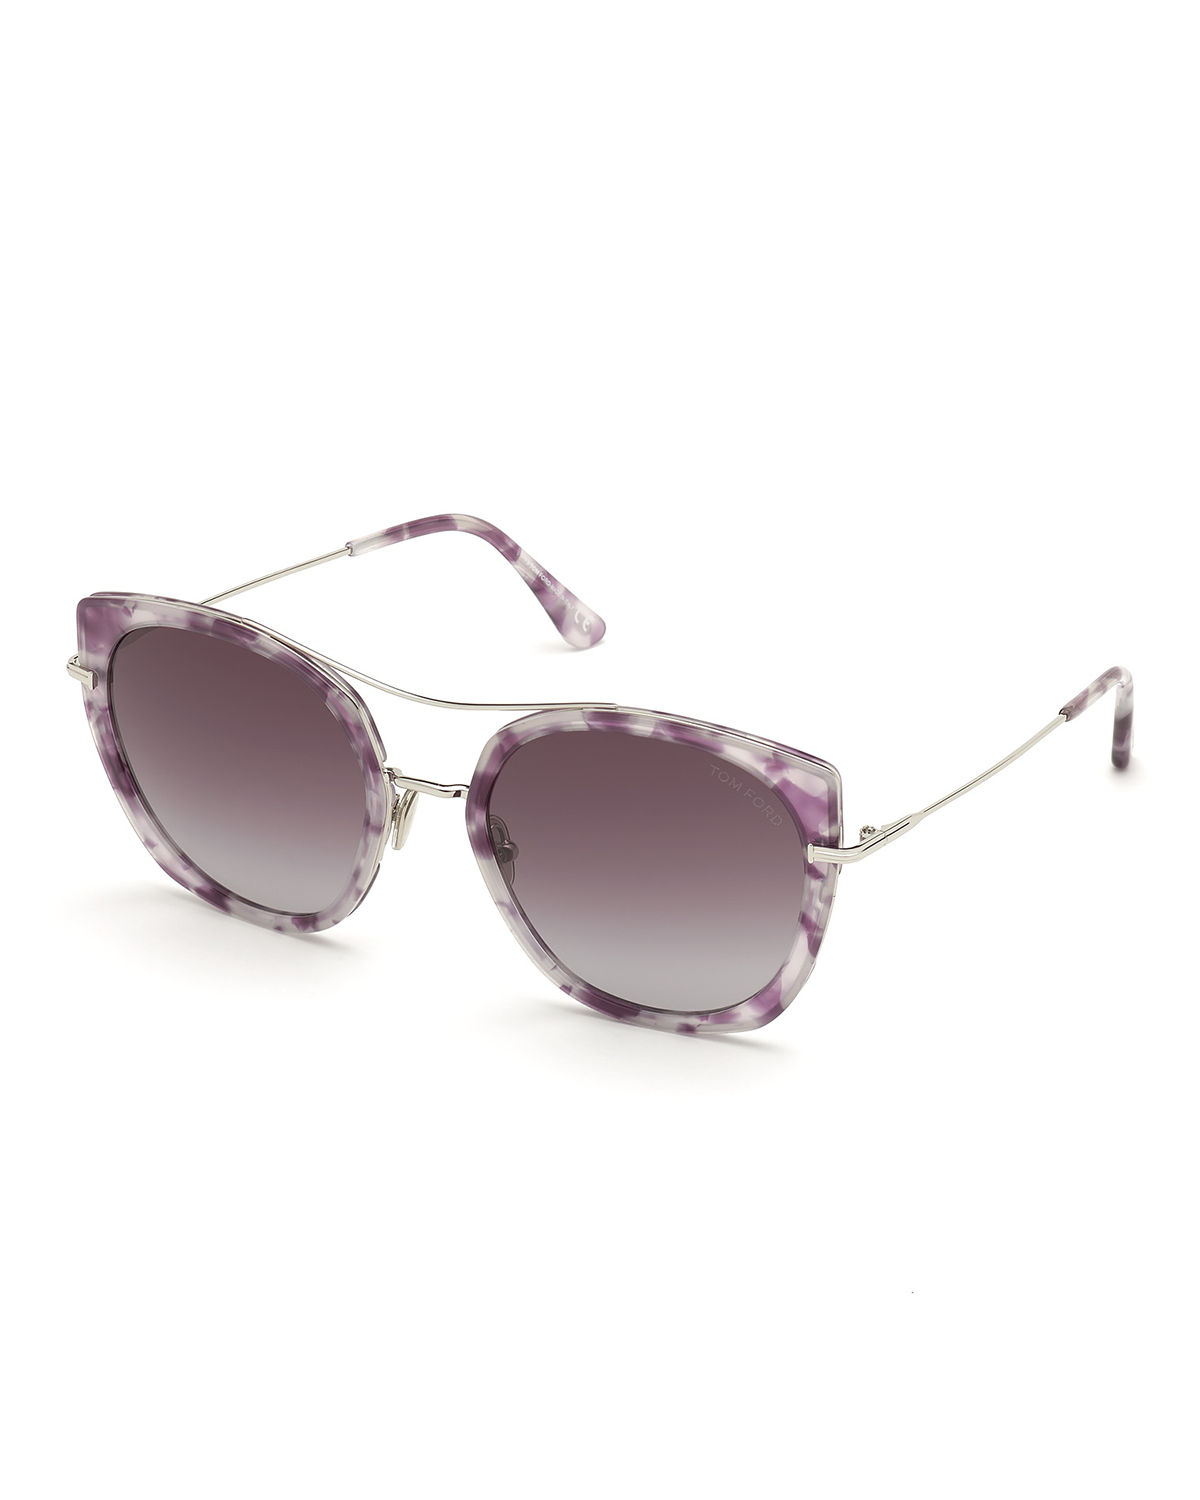 Tom Ford Sunglasses JOEY METAL CAT-EYE SUNGLASSES